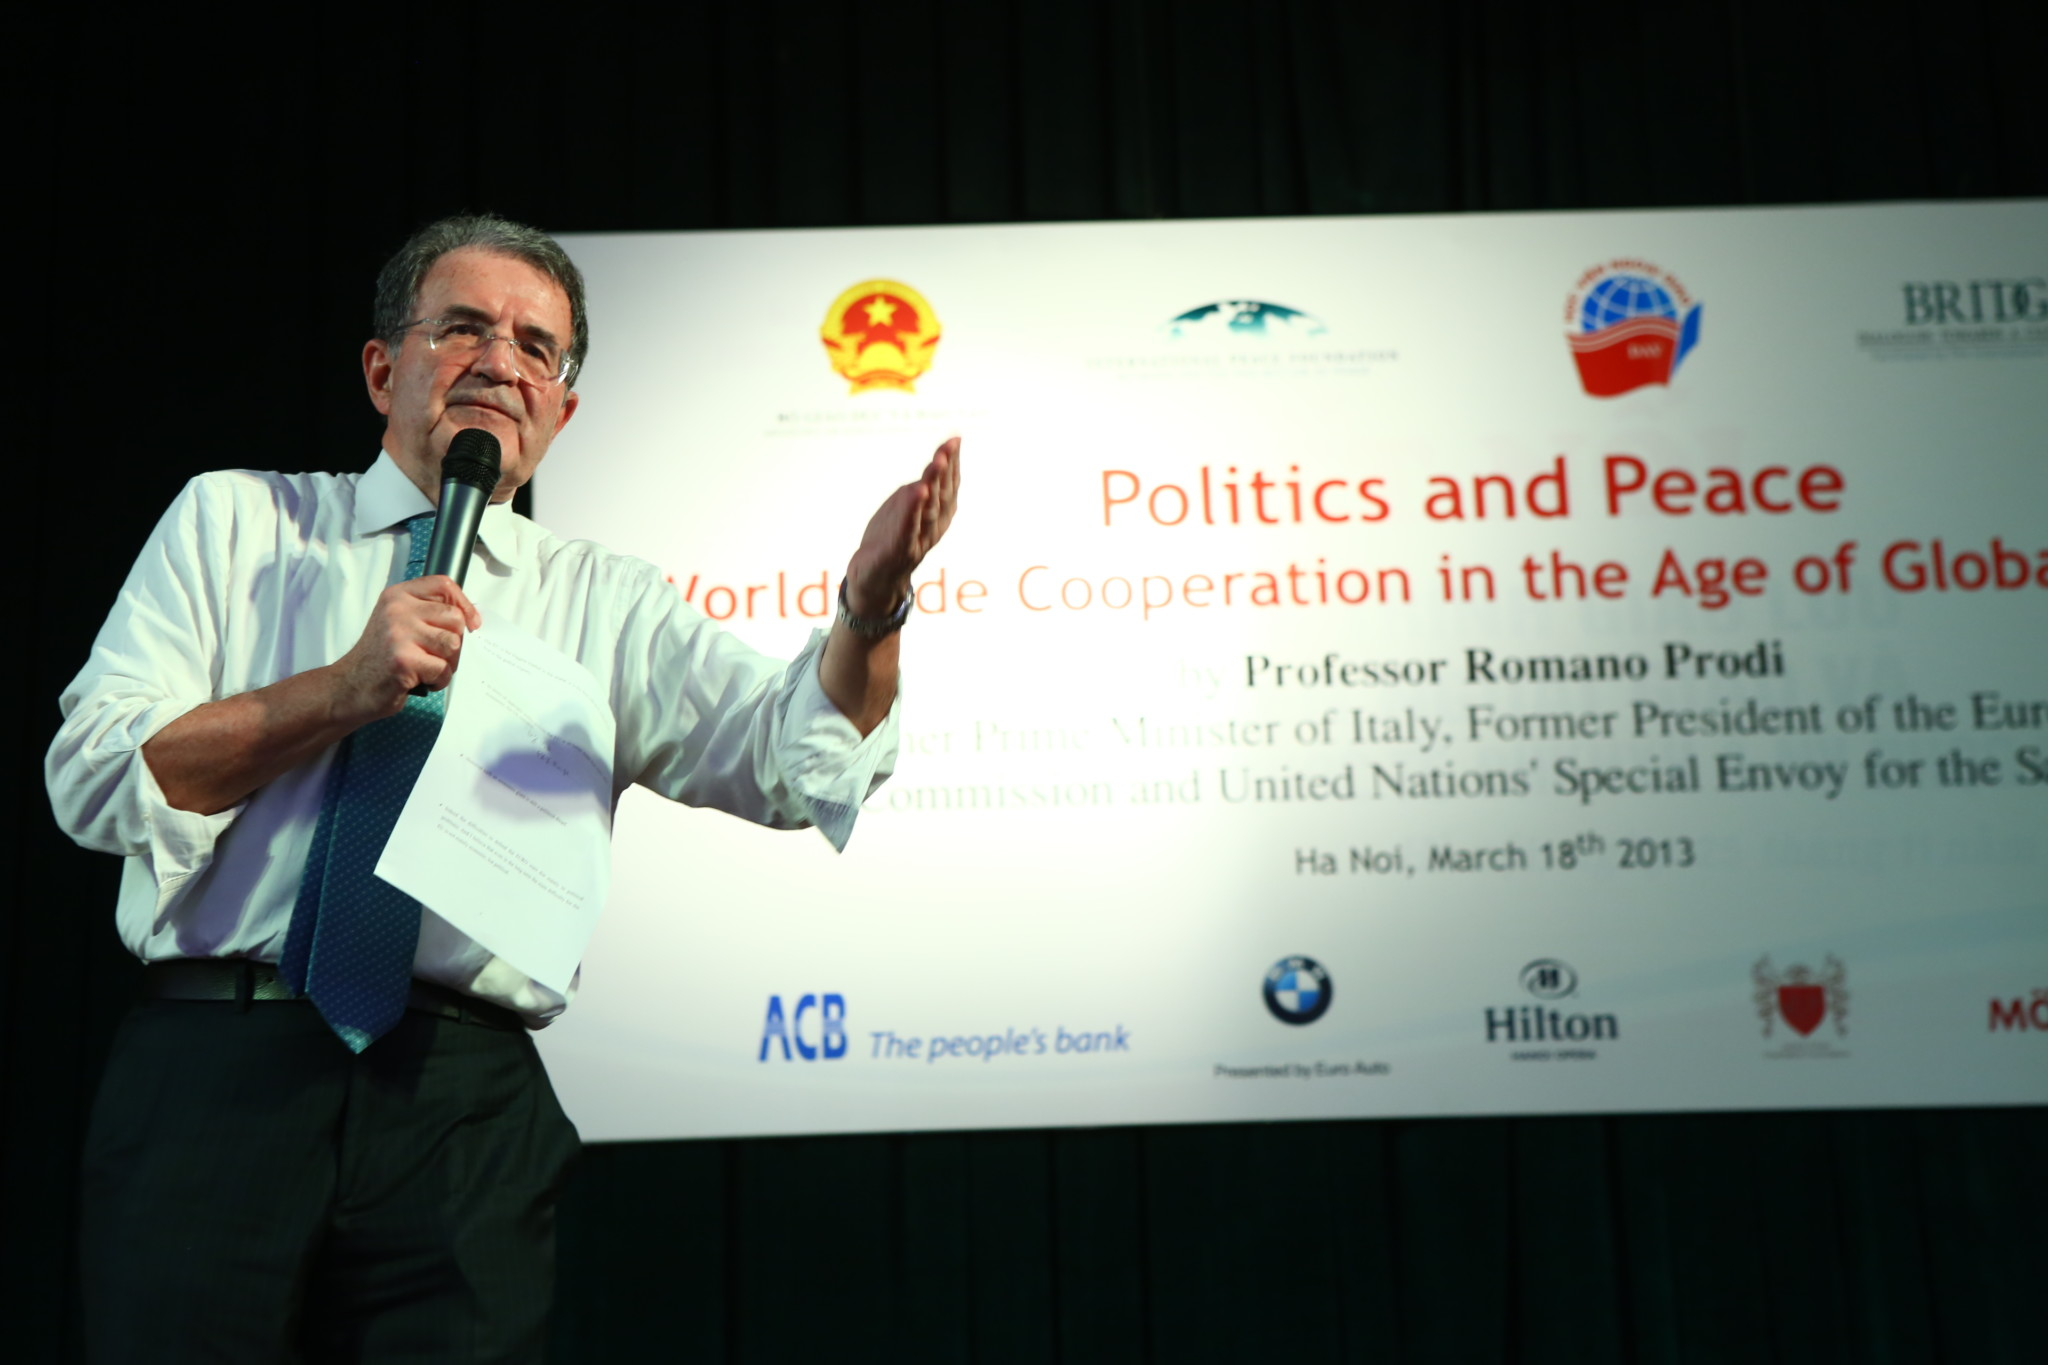 President Romano Prodi at the Diplomatic Academy of Vietnam in Hanoi